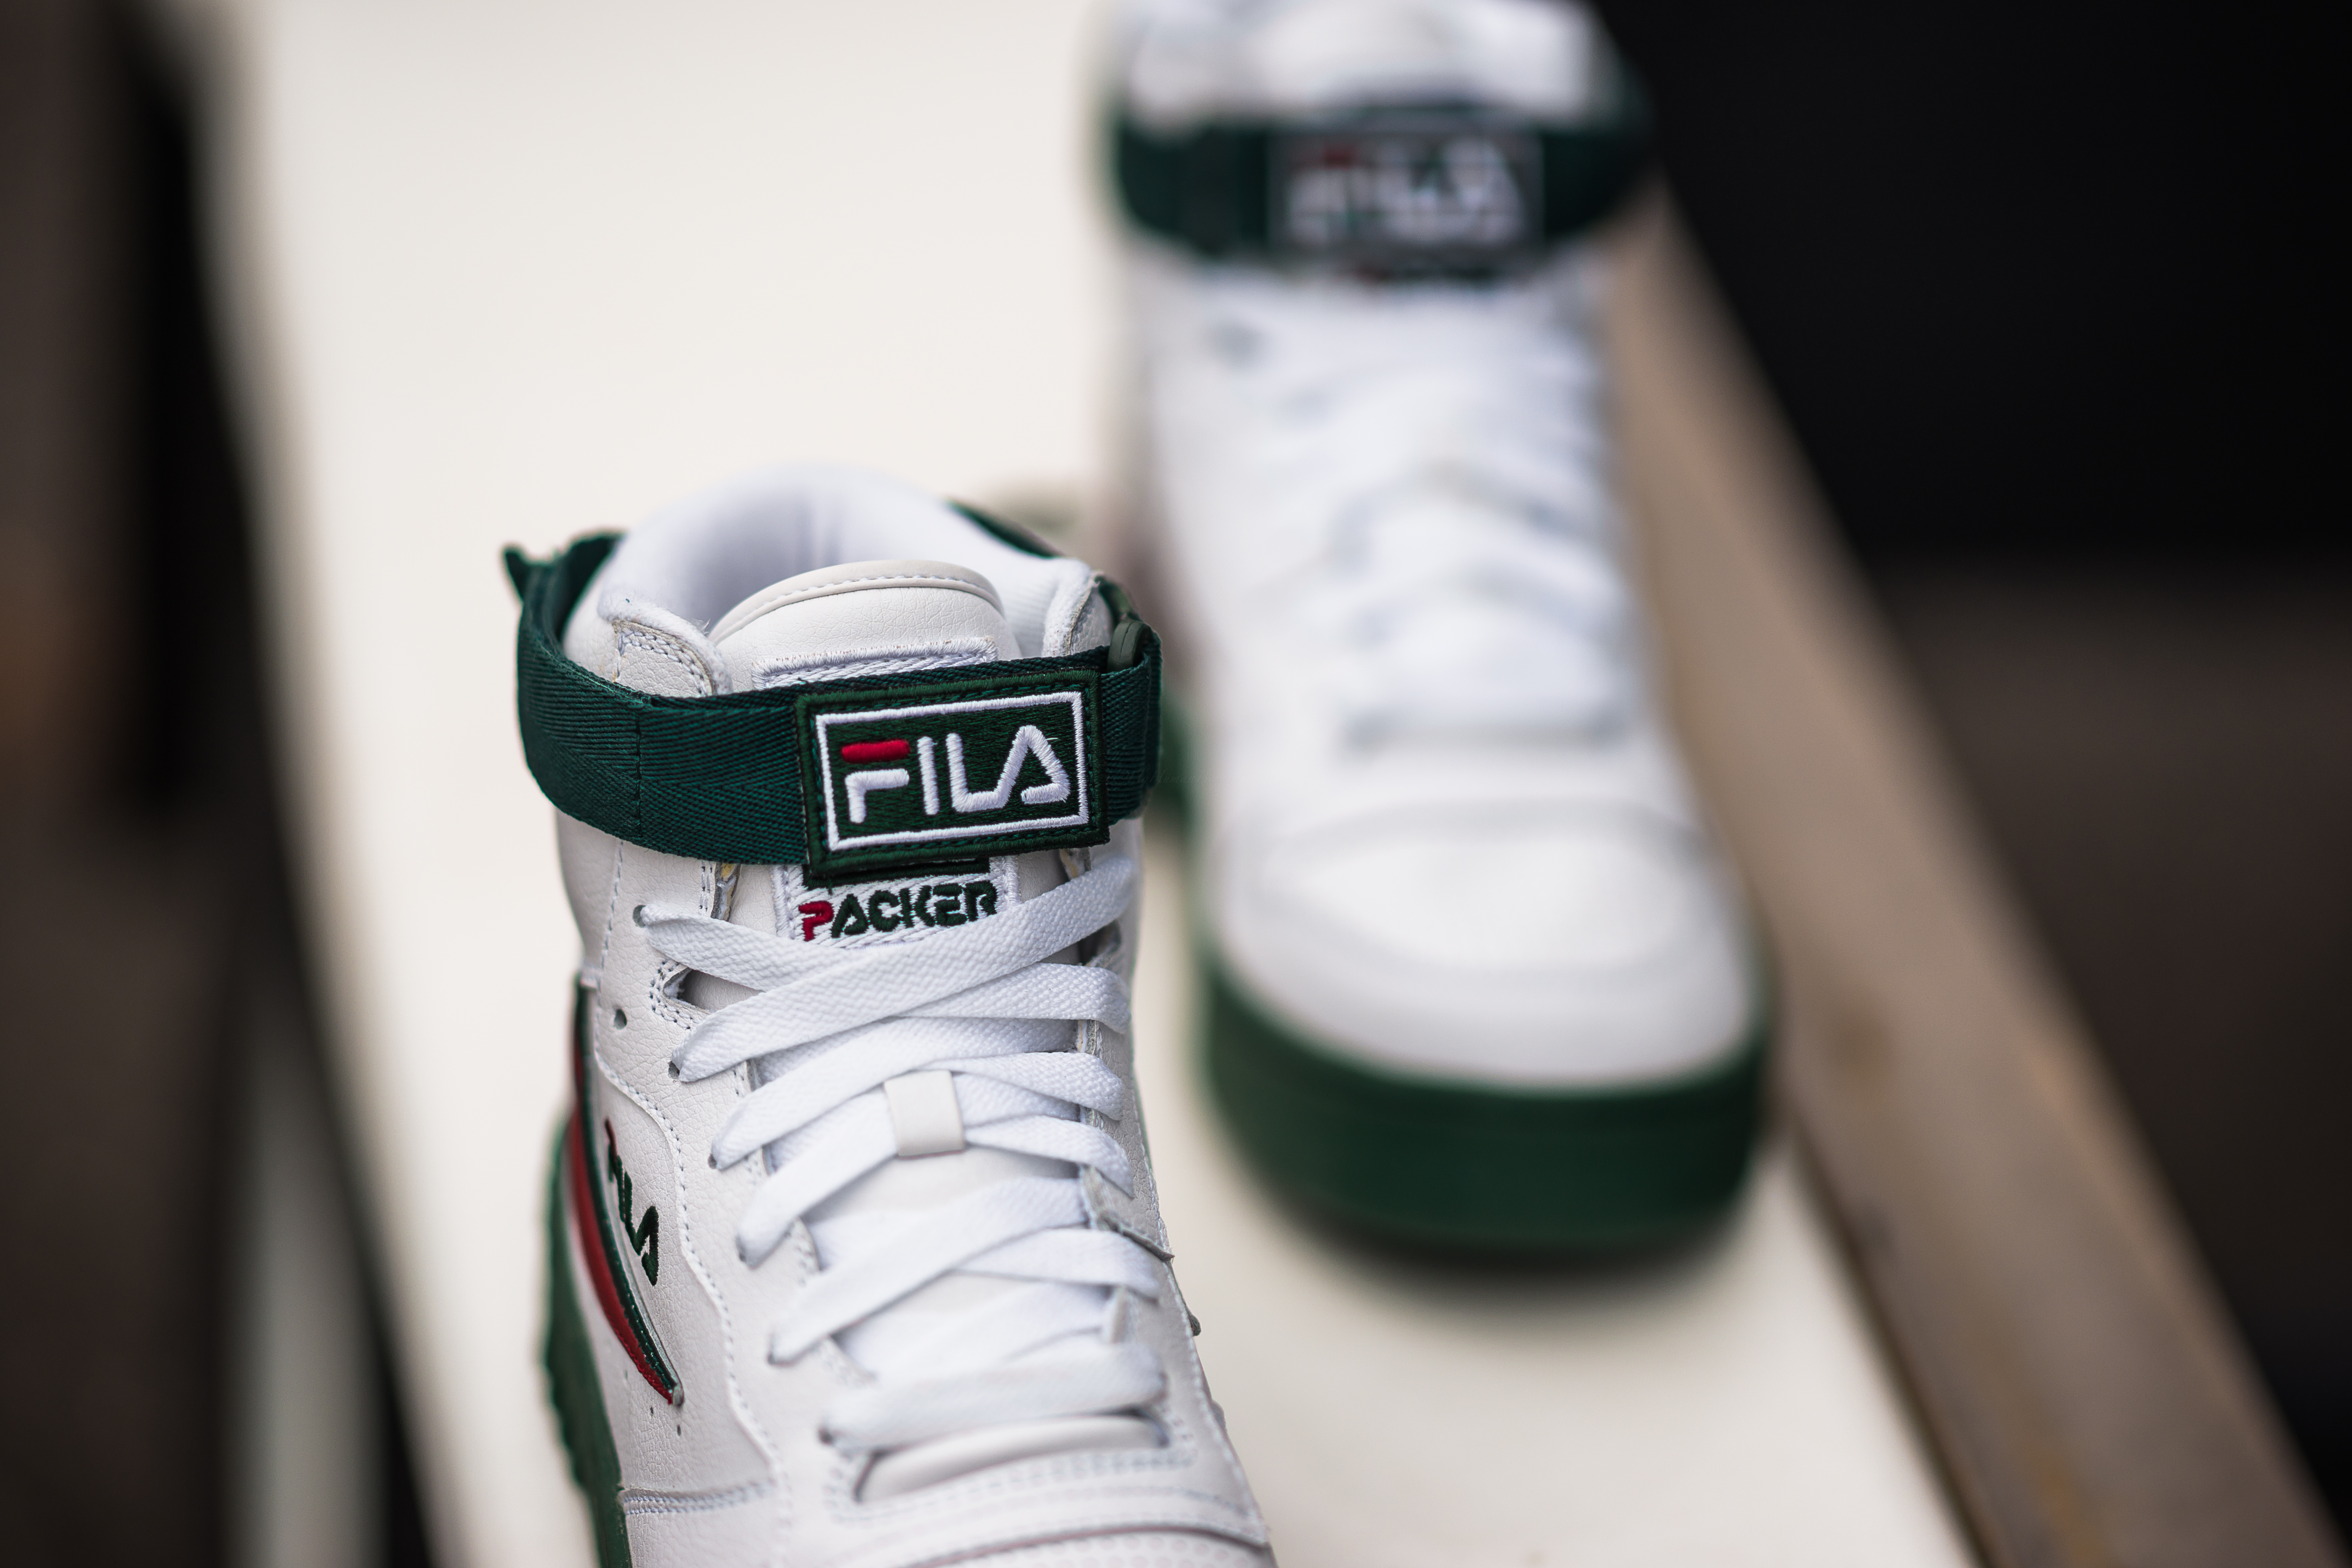 Packer Fx Fila Sneakers Pictures